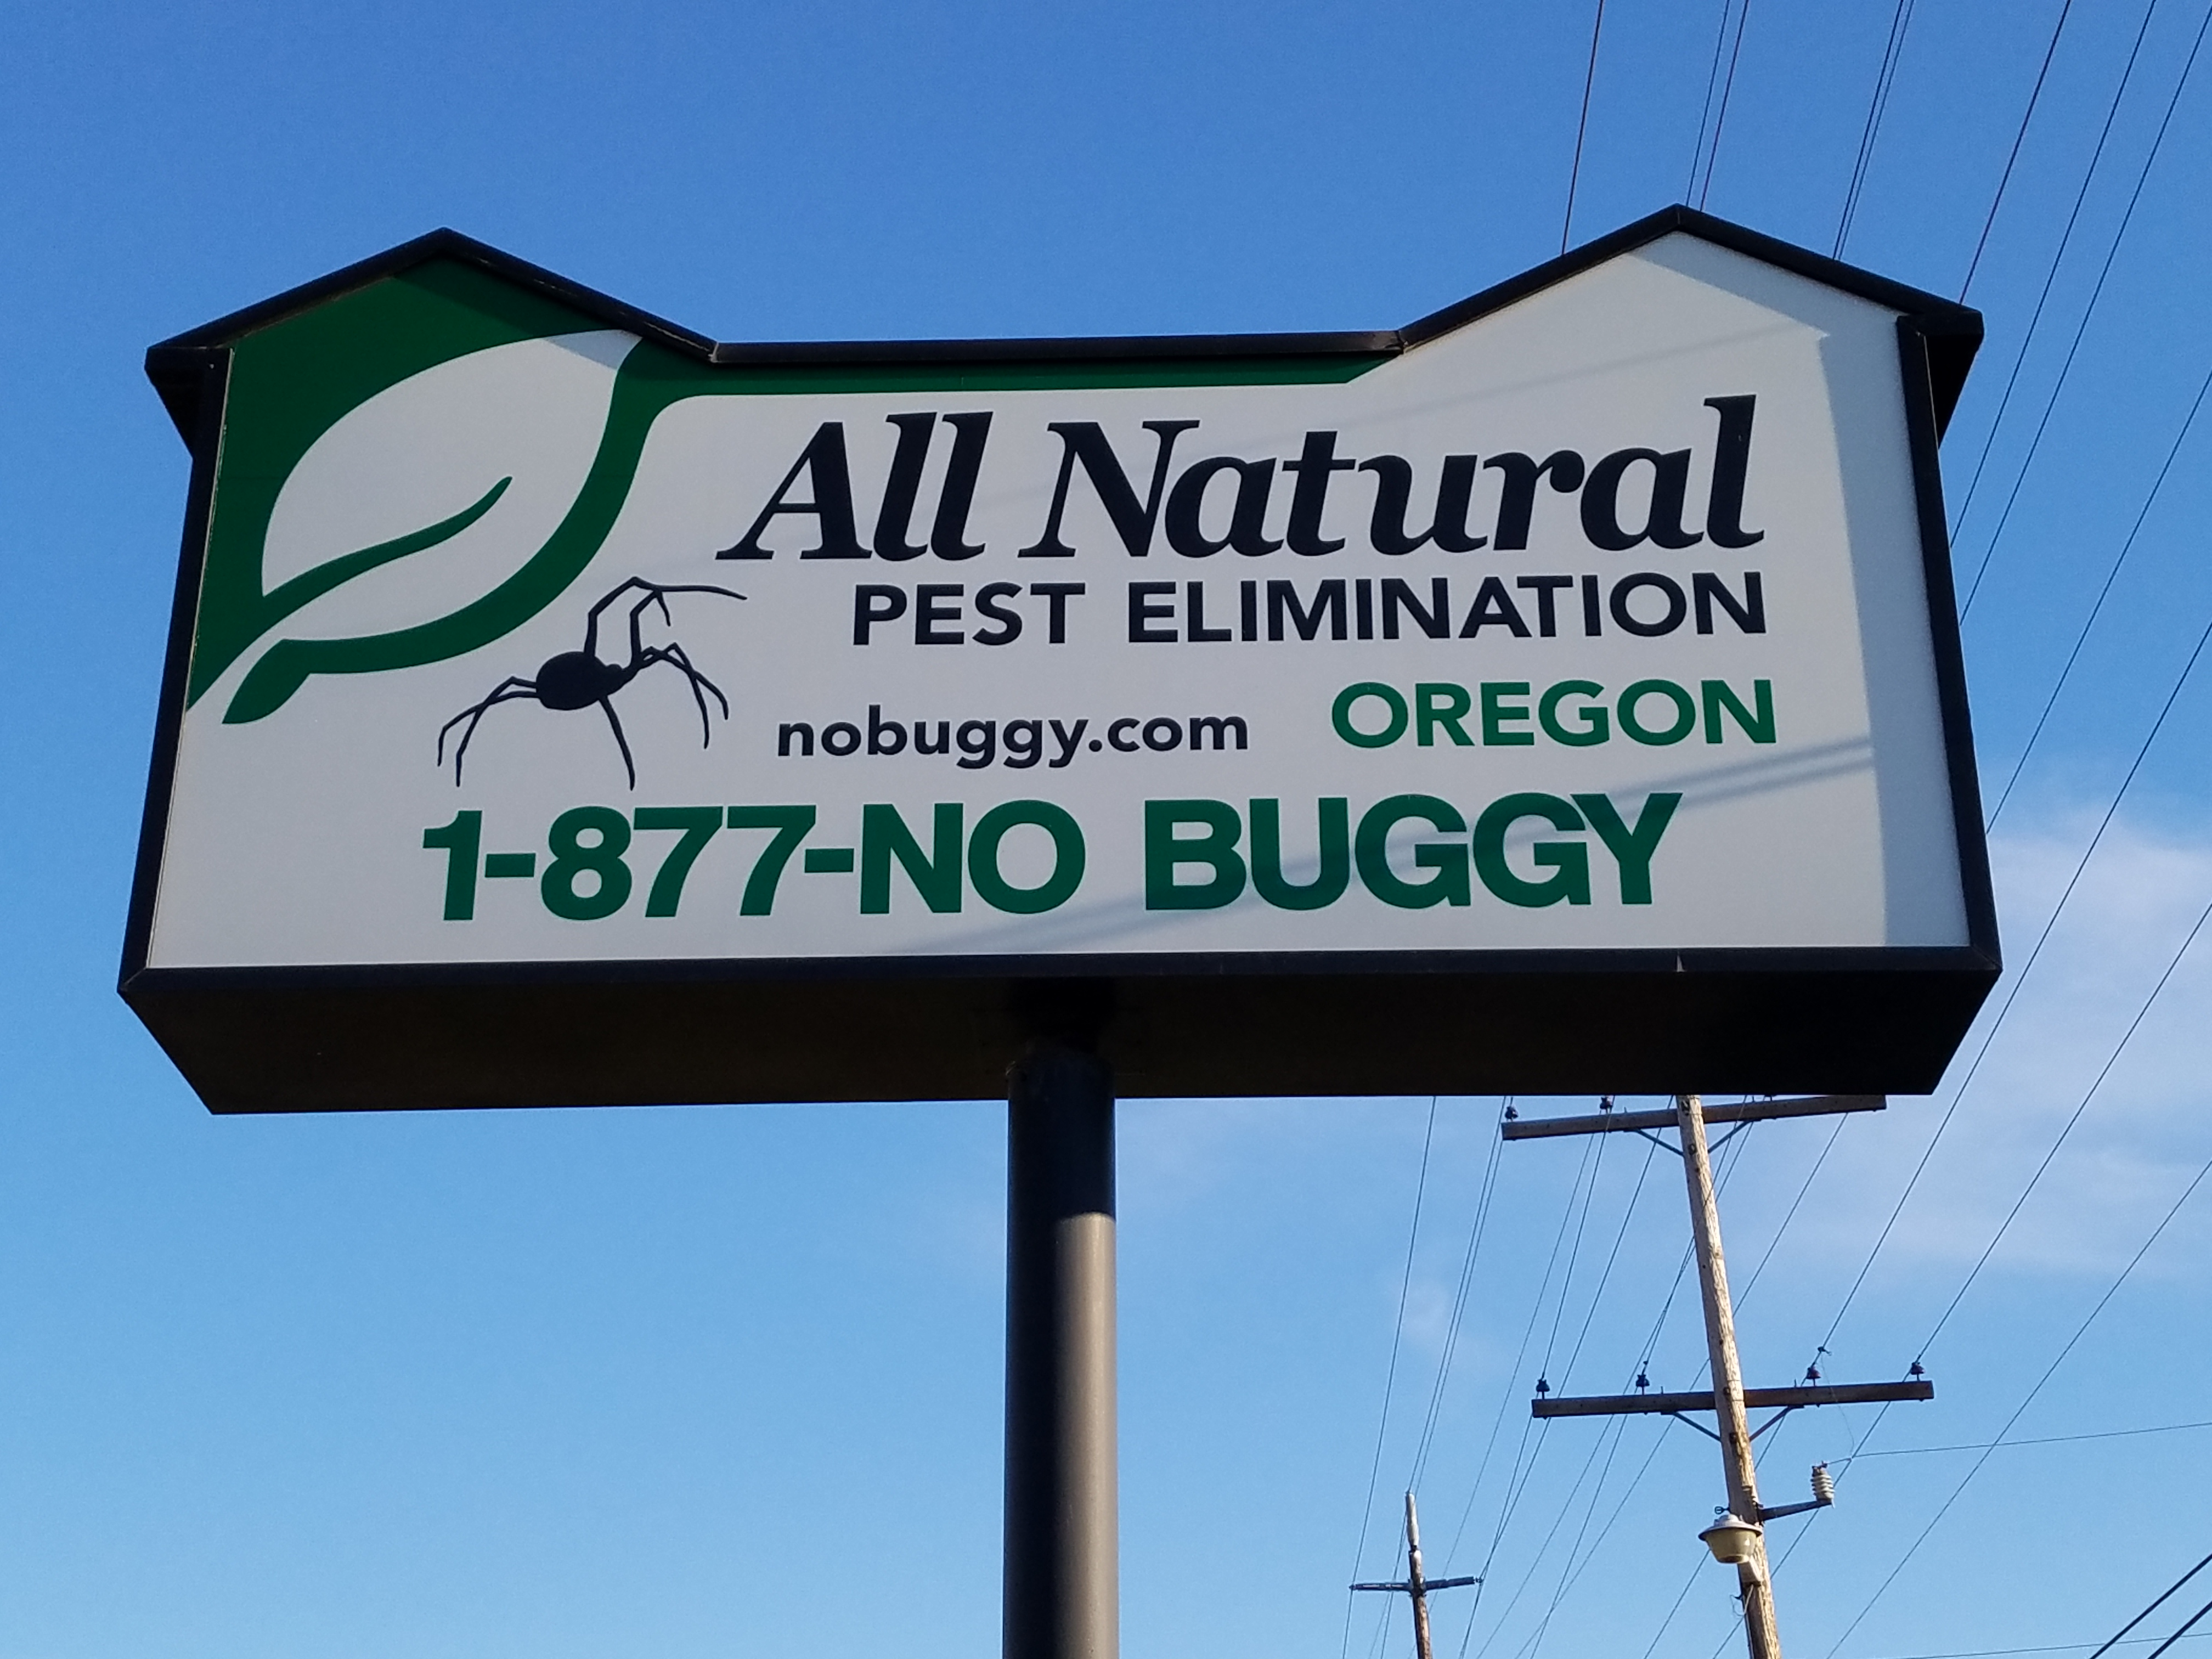 Oregon's #1 Natural Pest Control Service!